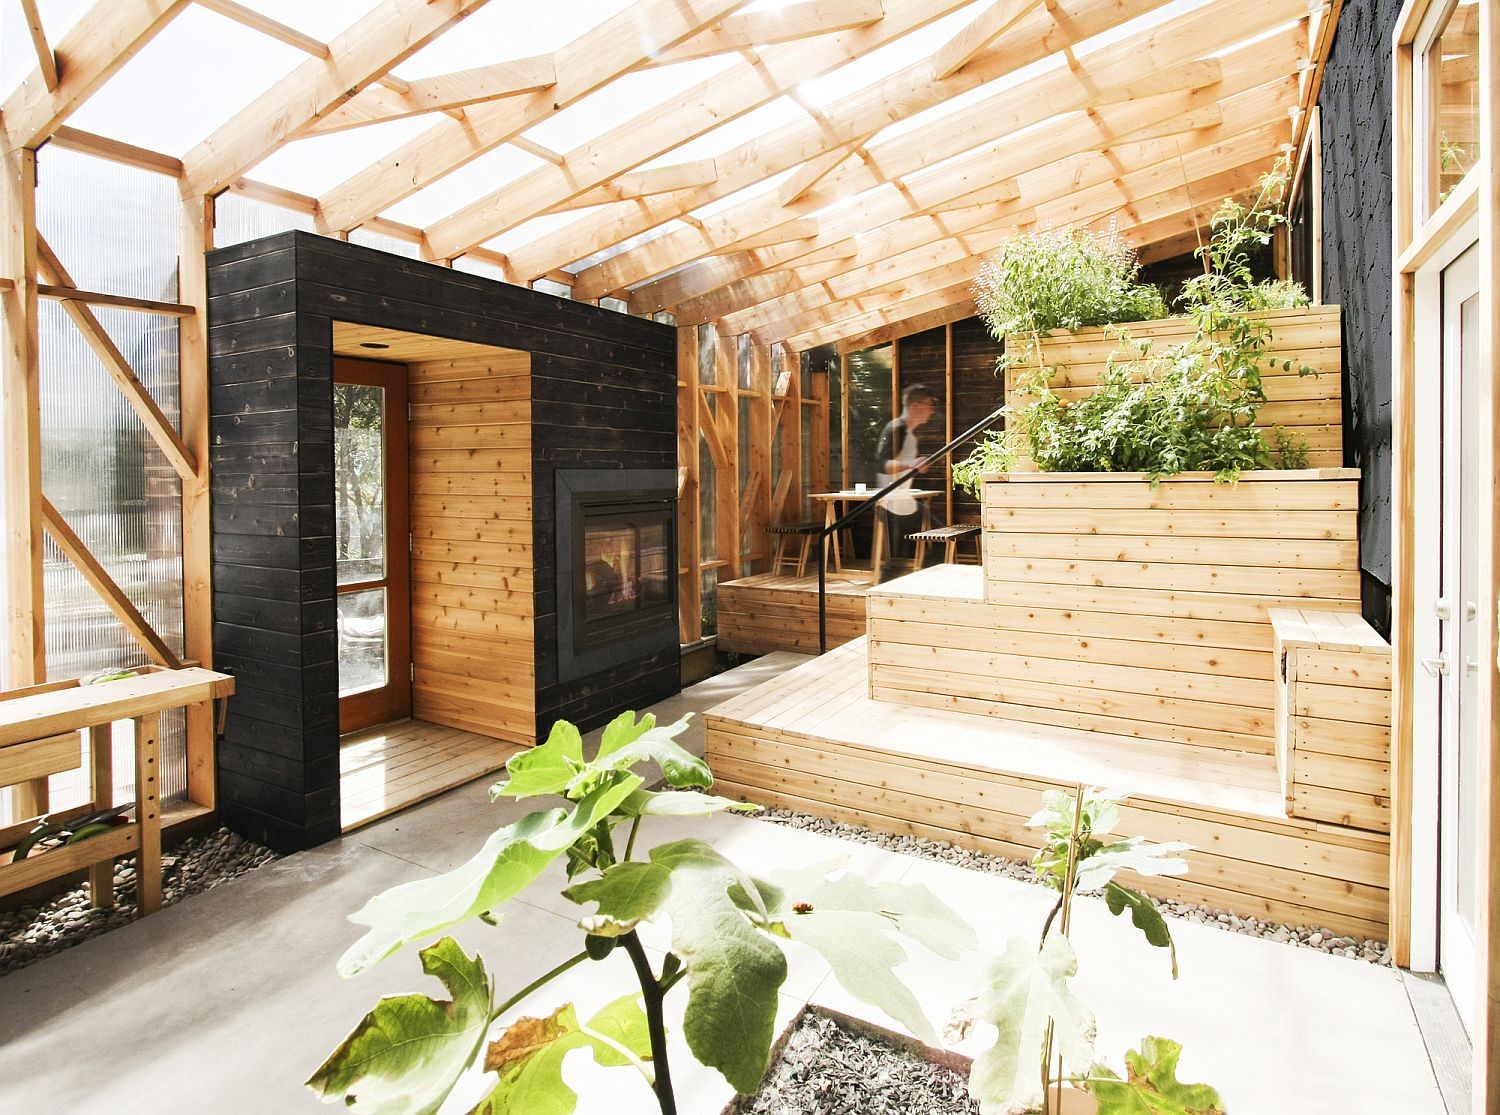 Terraced deck with integrated planters for the space savvy modern greenhouse Amazing Solarium Steals the Show at this Renovated Mid Century Bungalow